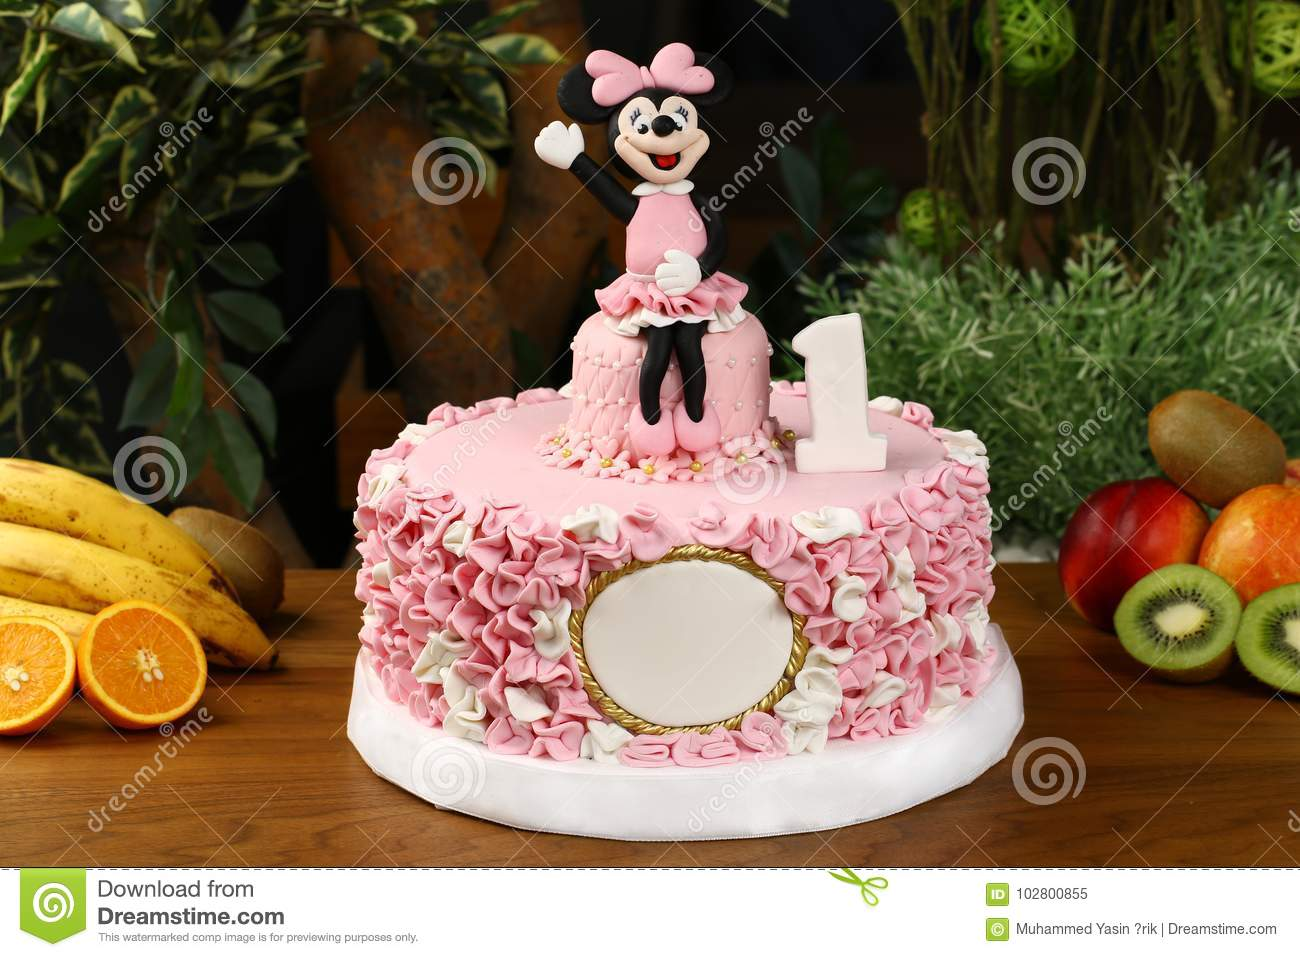 Big Birthday Cake Decorated With Mickey Mouse Consept